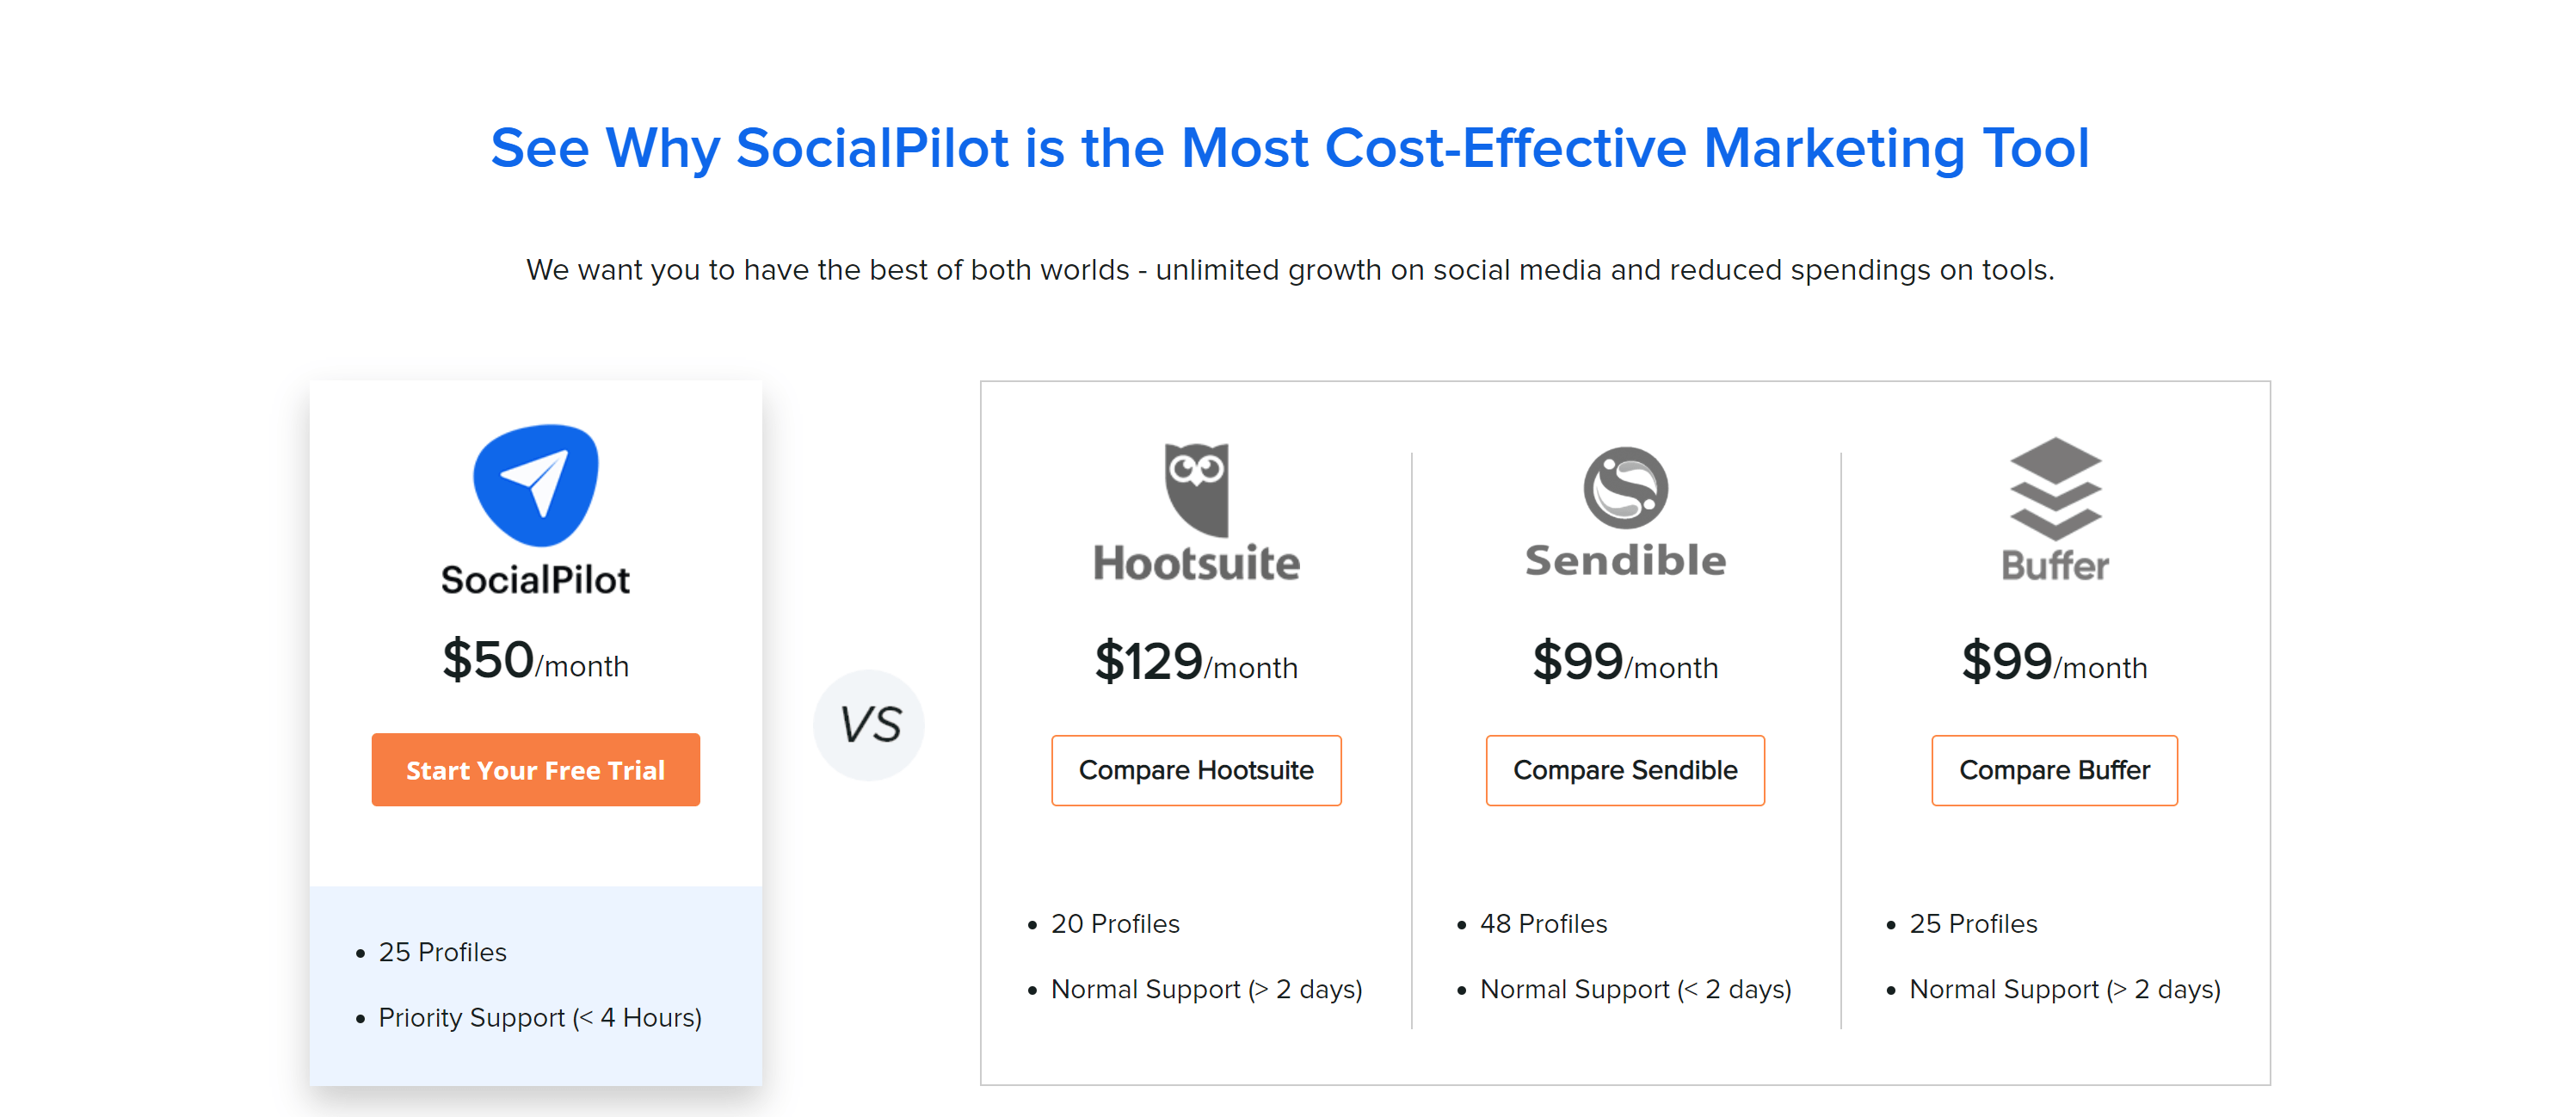 SoicalPilot Review-Why socialpilot is better than others